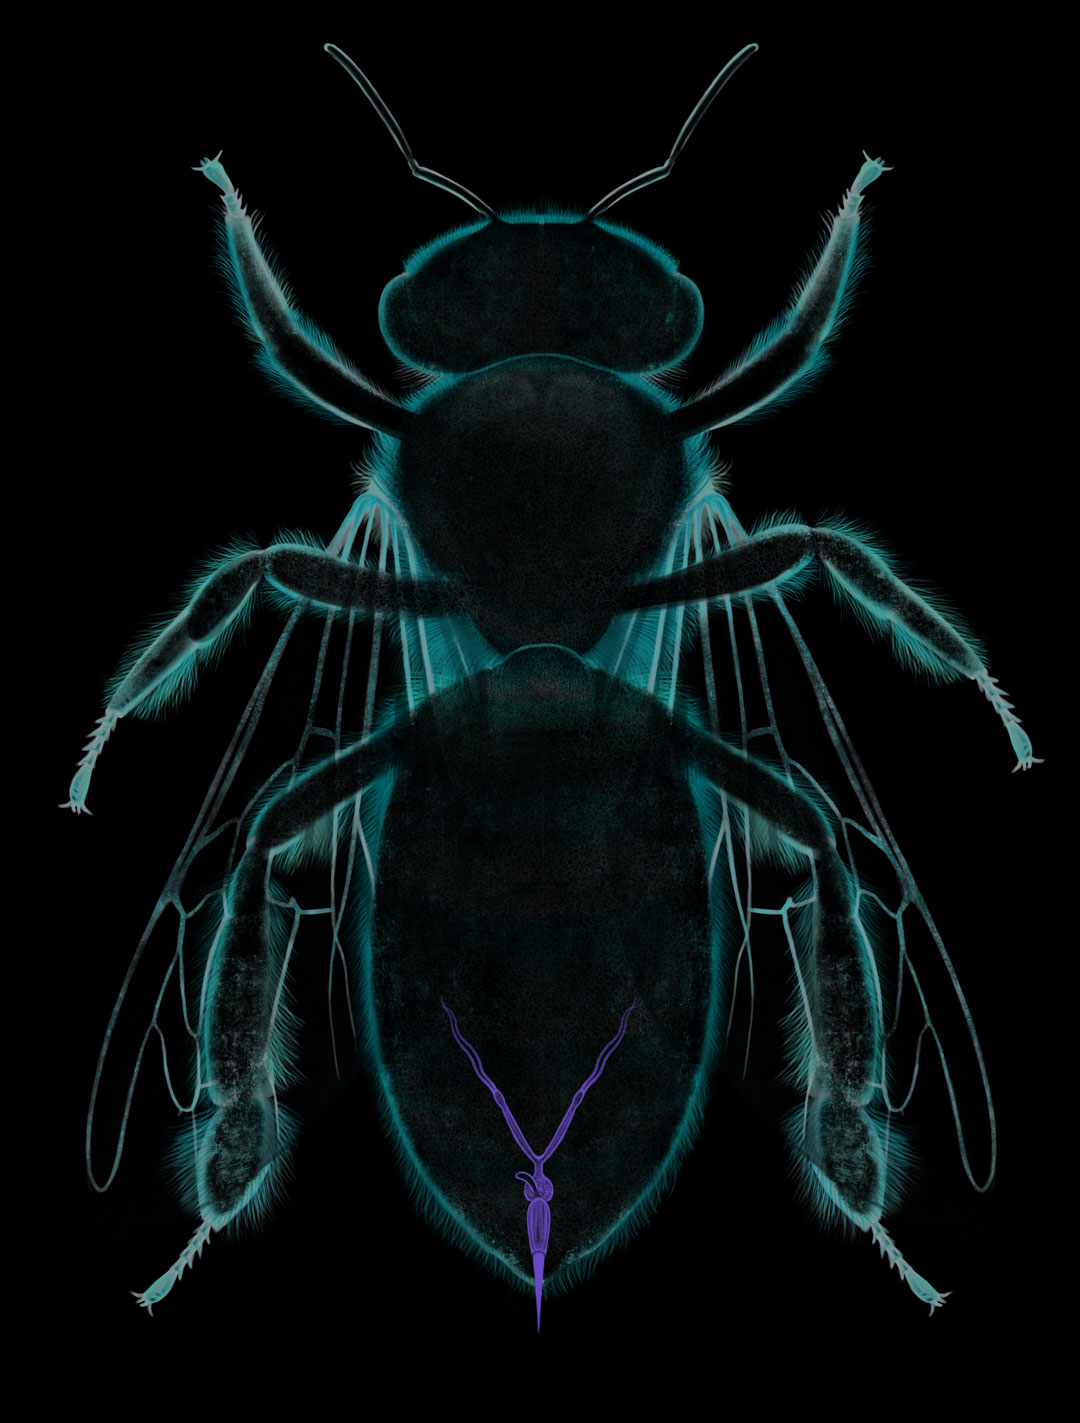 Apis mellifera, inner anatomy. Atrofied reproductive system of  a worker bee, with its ovopositor modified as a stinger. Art by Román García Mora.